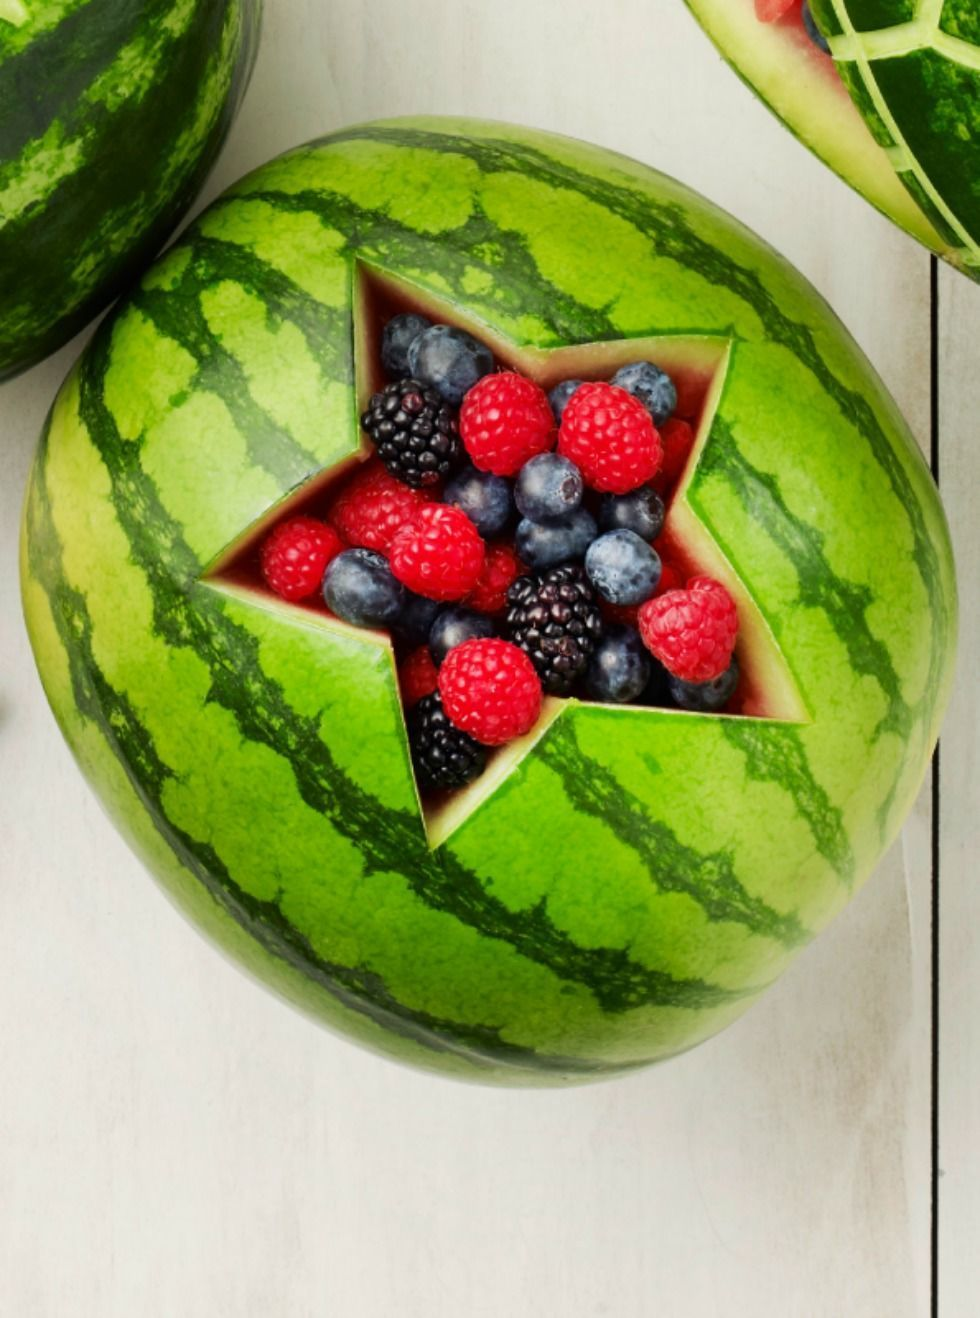 Amazing watermelon sculptures that look almost too good to eat